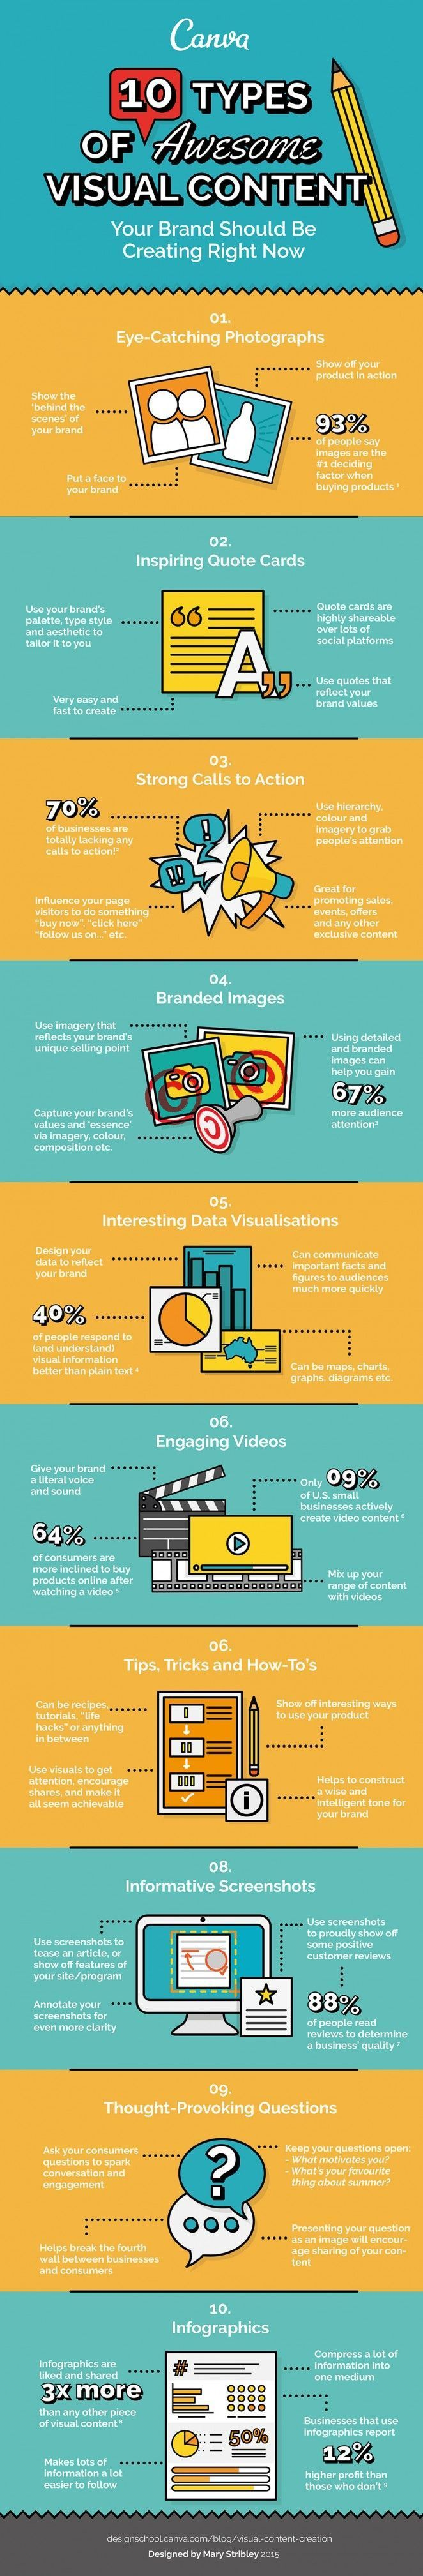 Types of Visual Content - great resource for nonprofit, small business, and startup marketers!